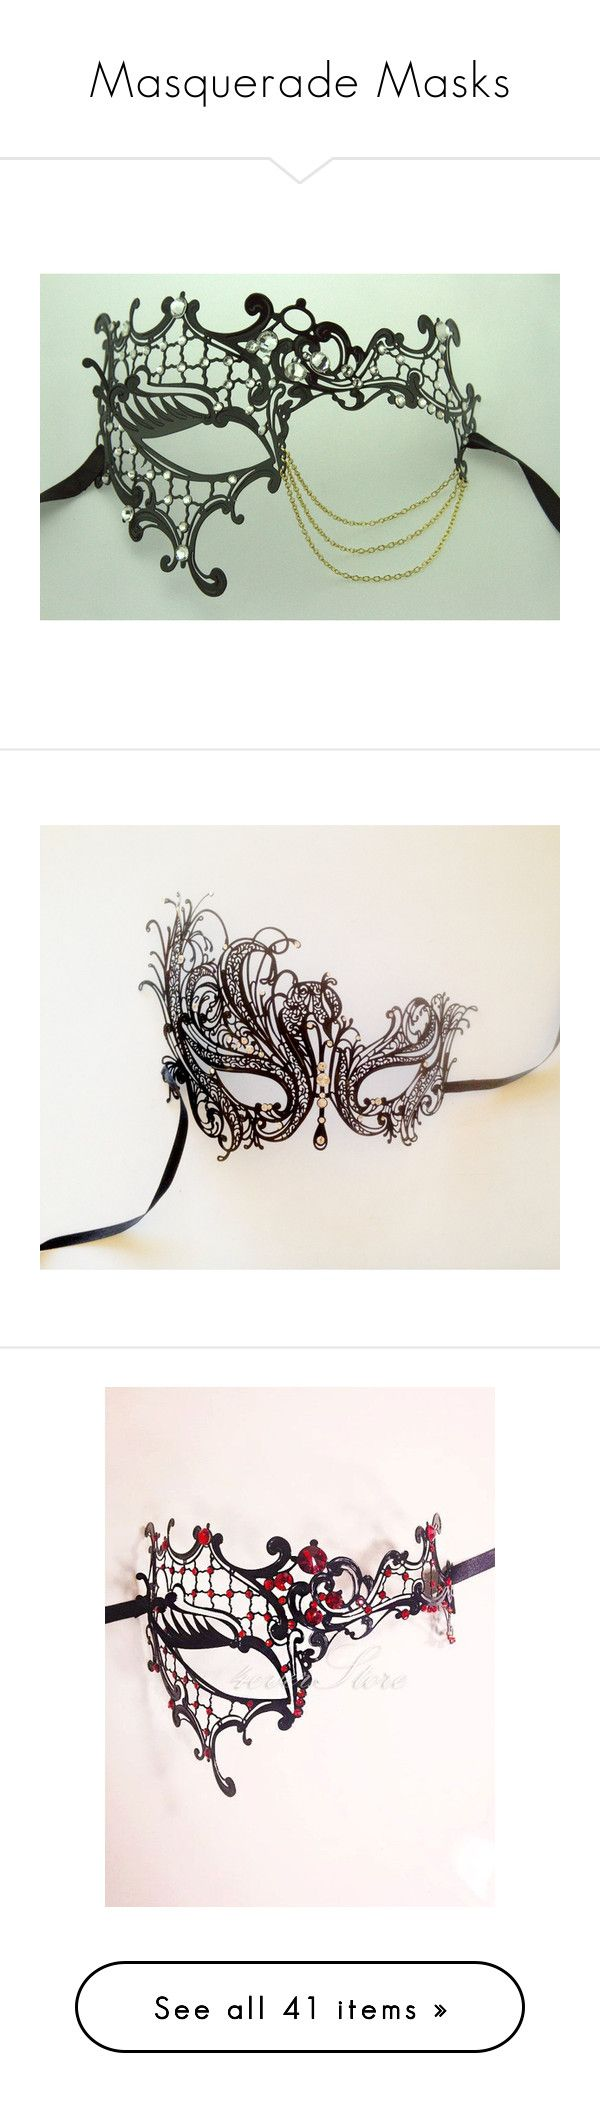 masquerade masks by gingerstark liked on polyvore featuring masks masquerade costumes - Halloween Costumes With A Masquerade Mask